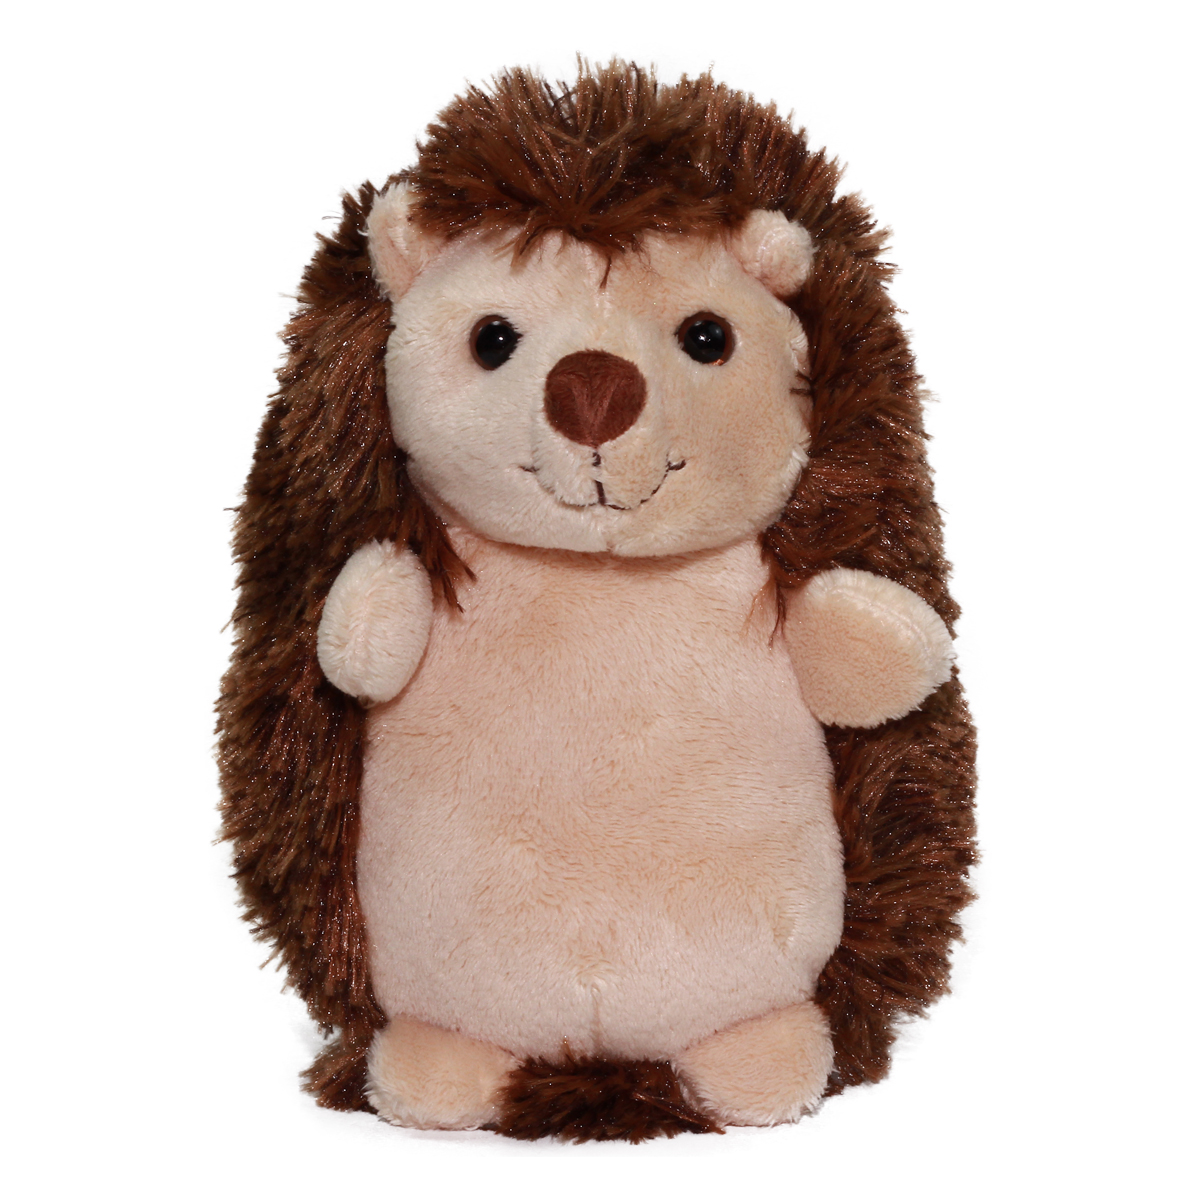 Hedgehog Stuffed Animal Unney & Cree Plush Collection Brown 7 Inches